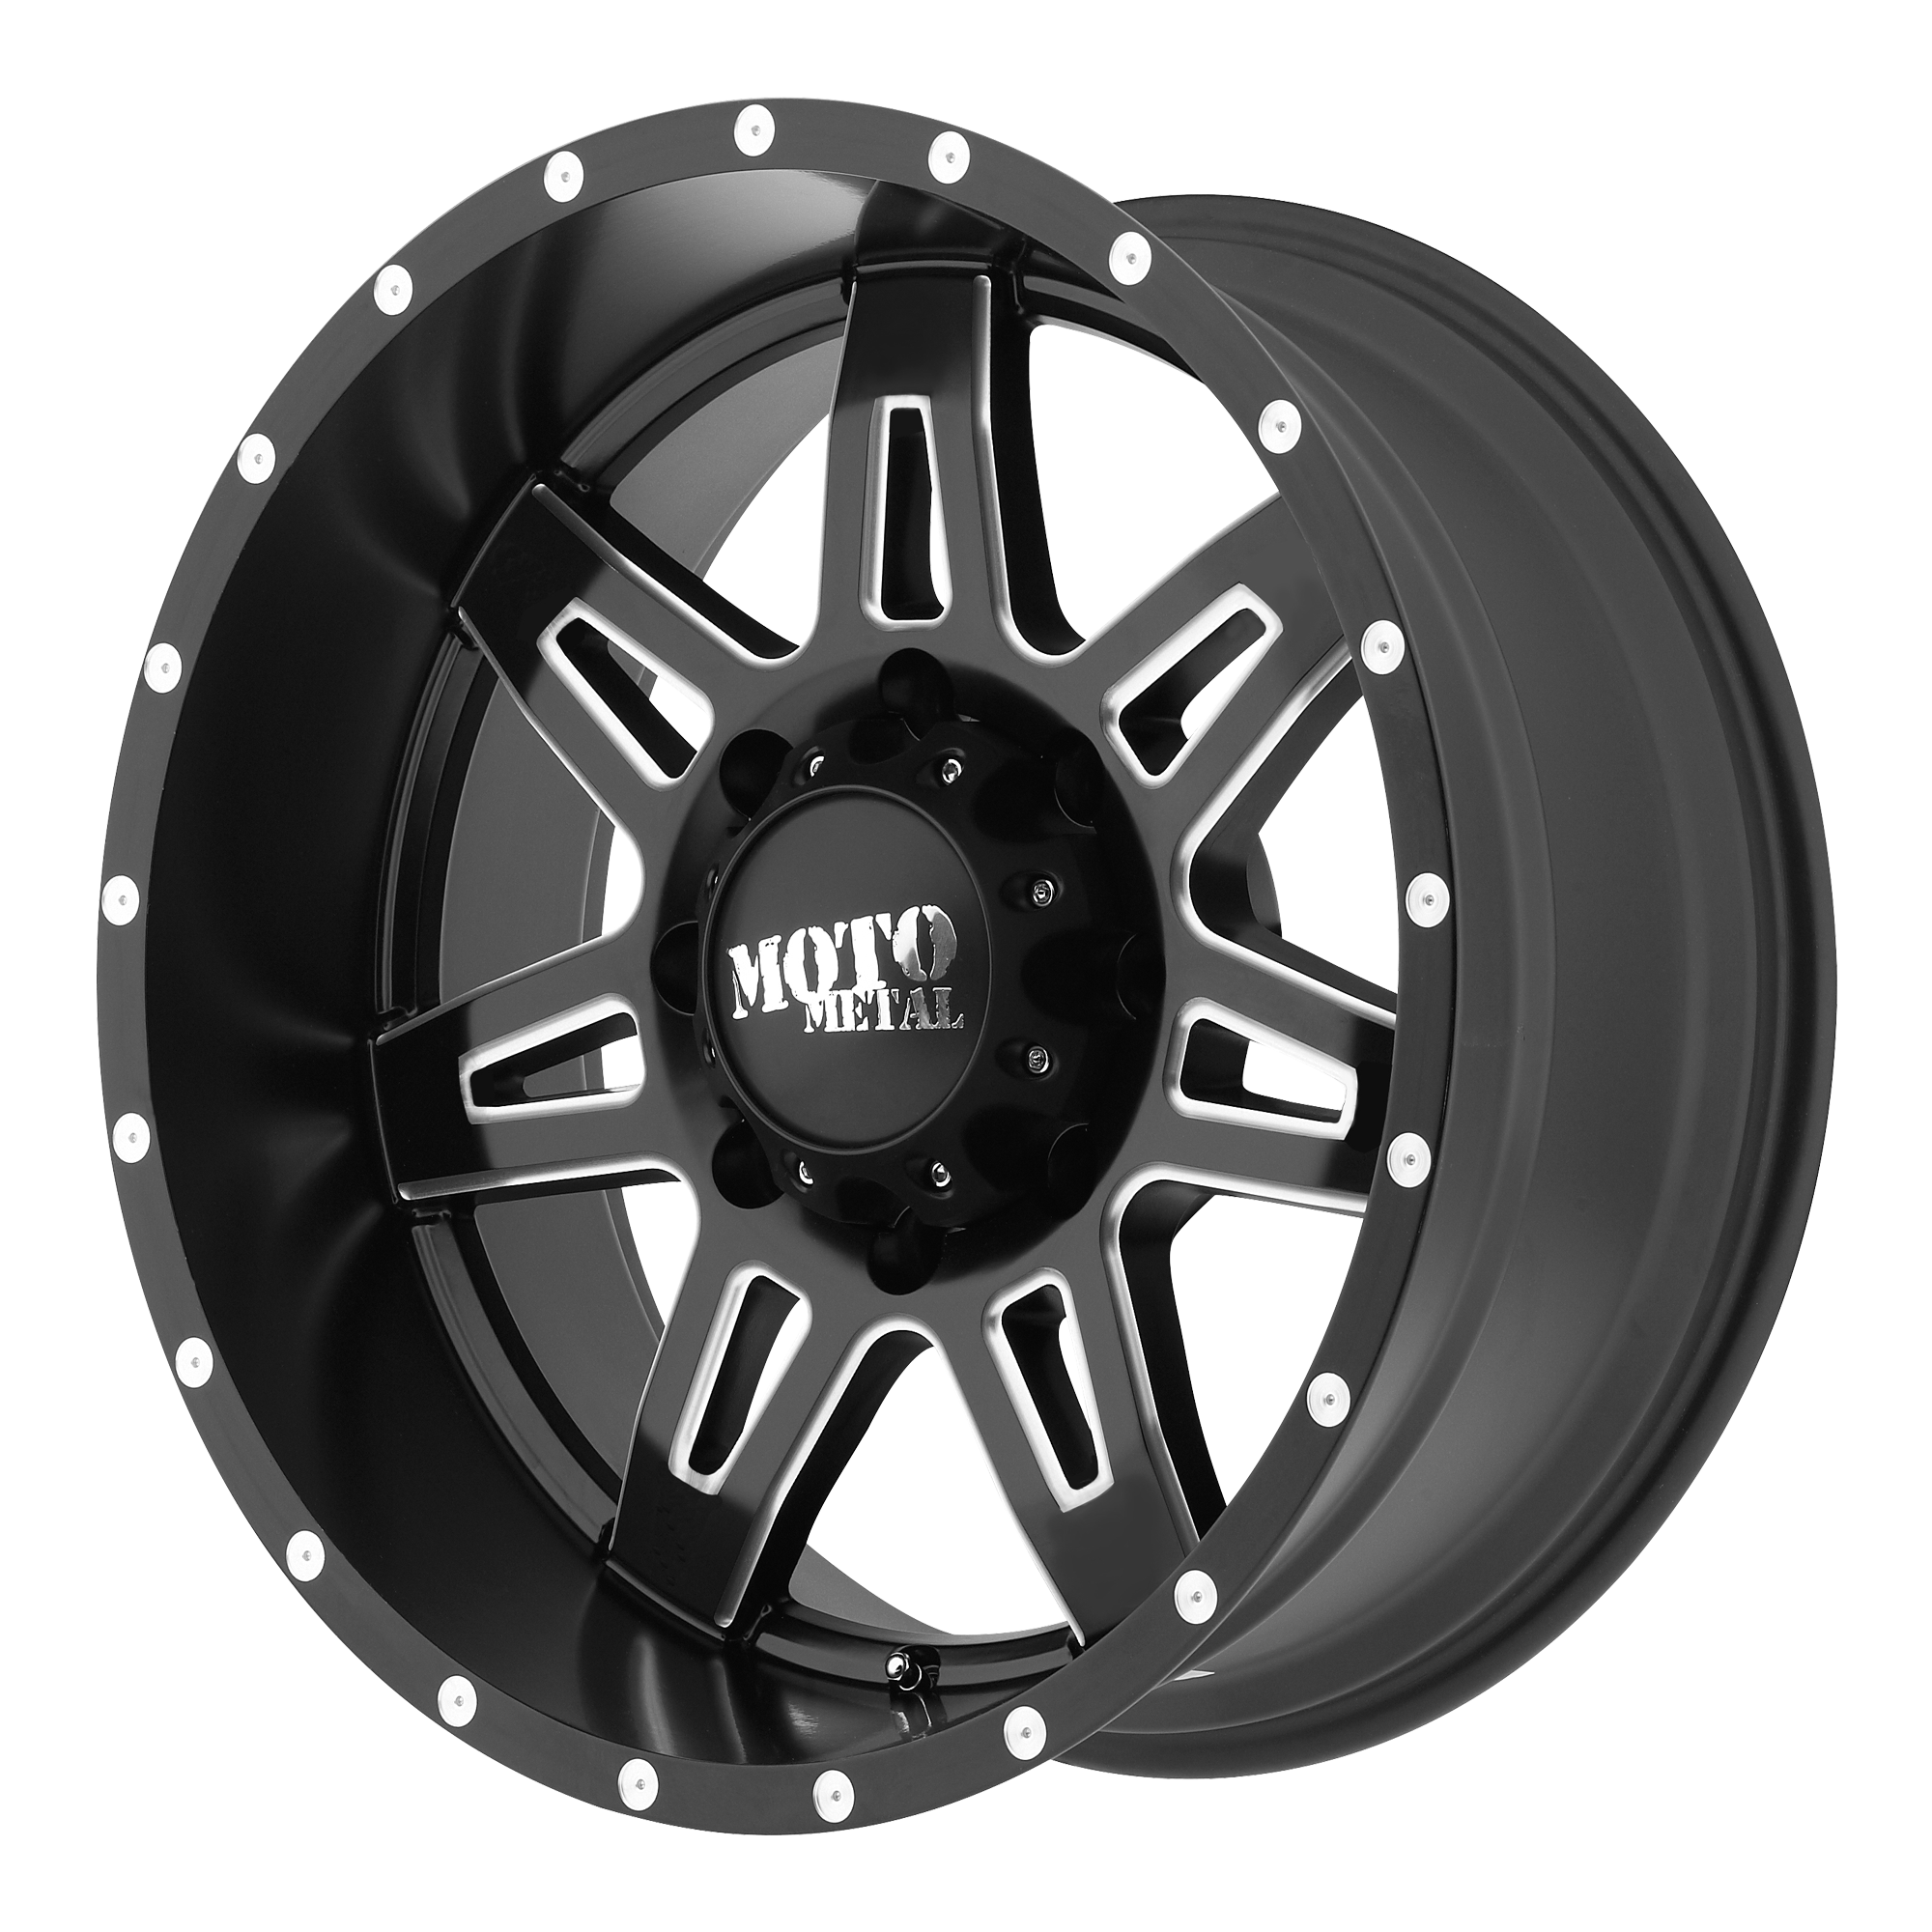 Moto Metal Offroad Wheels MO975 Satin Black Milled